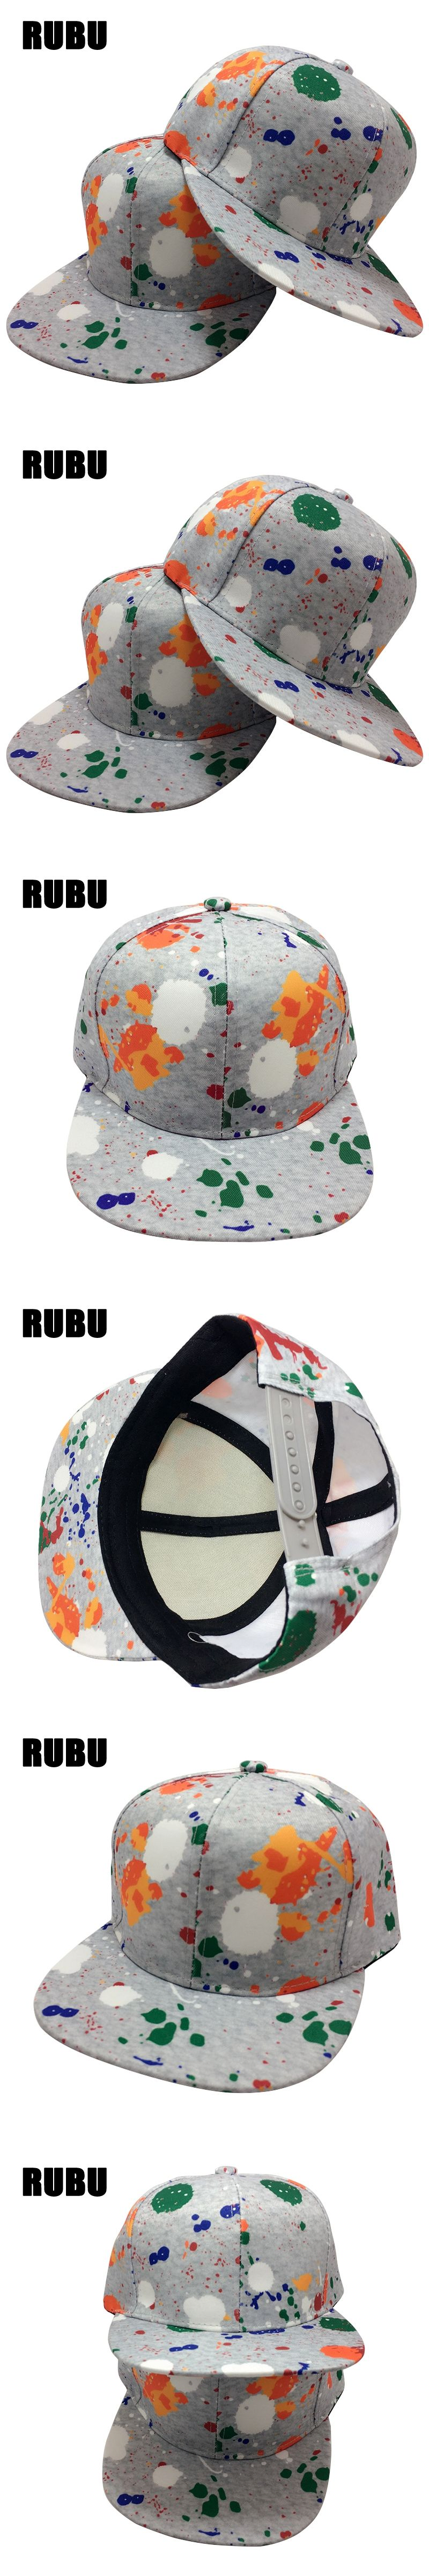 k pop Children hat Hip Hop Cap Boy Girl Graffiti Brand Snapback Cap  Children Baseball Cap 26089bee85a8